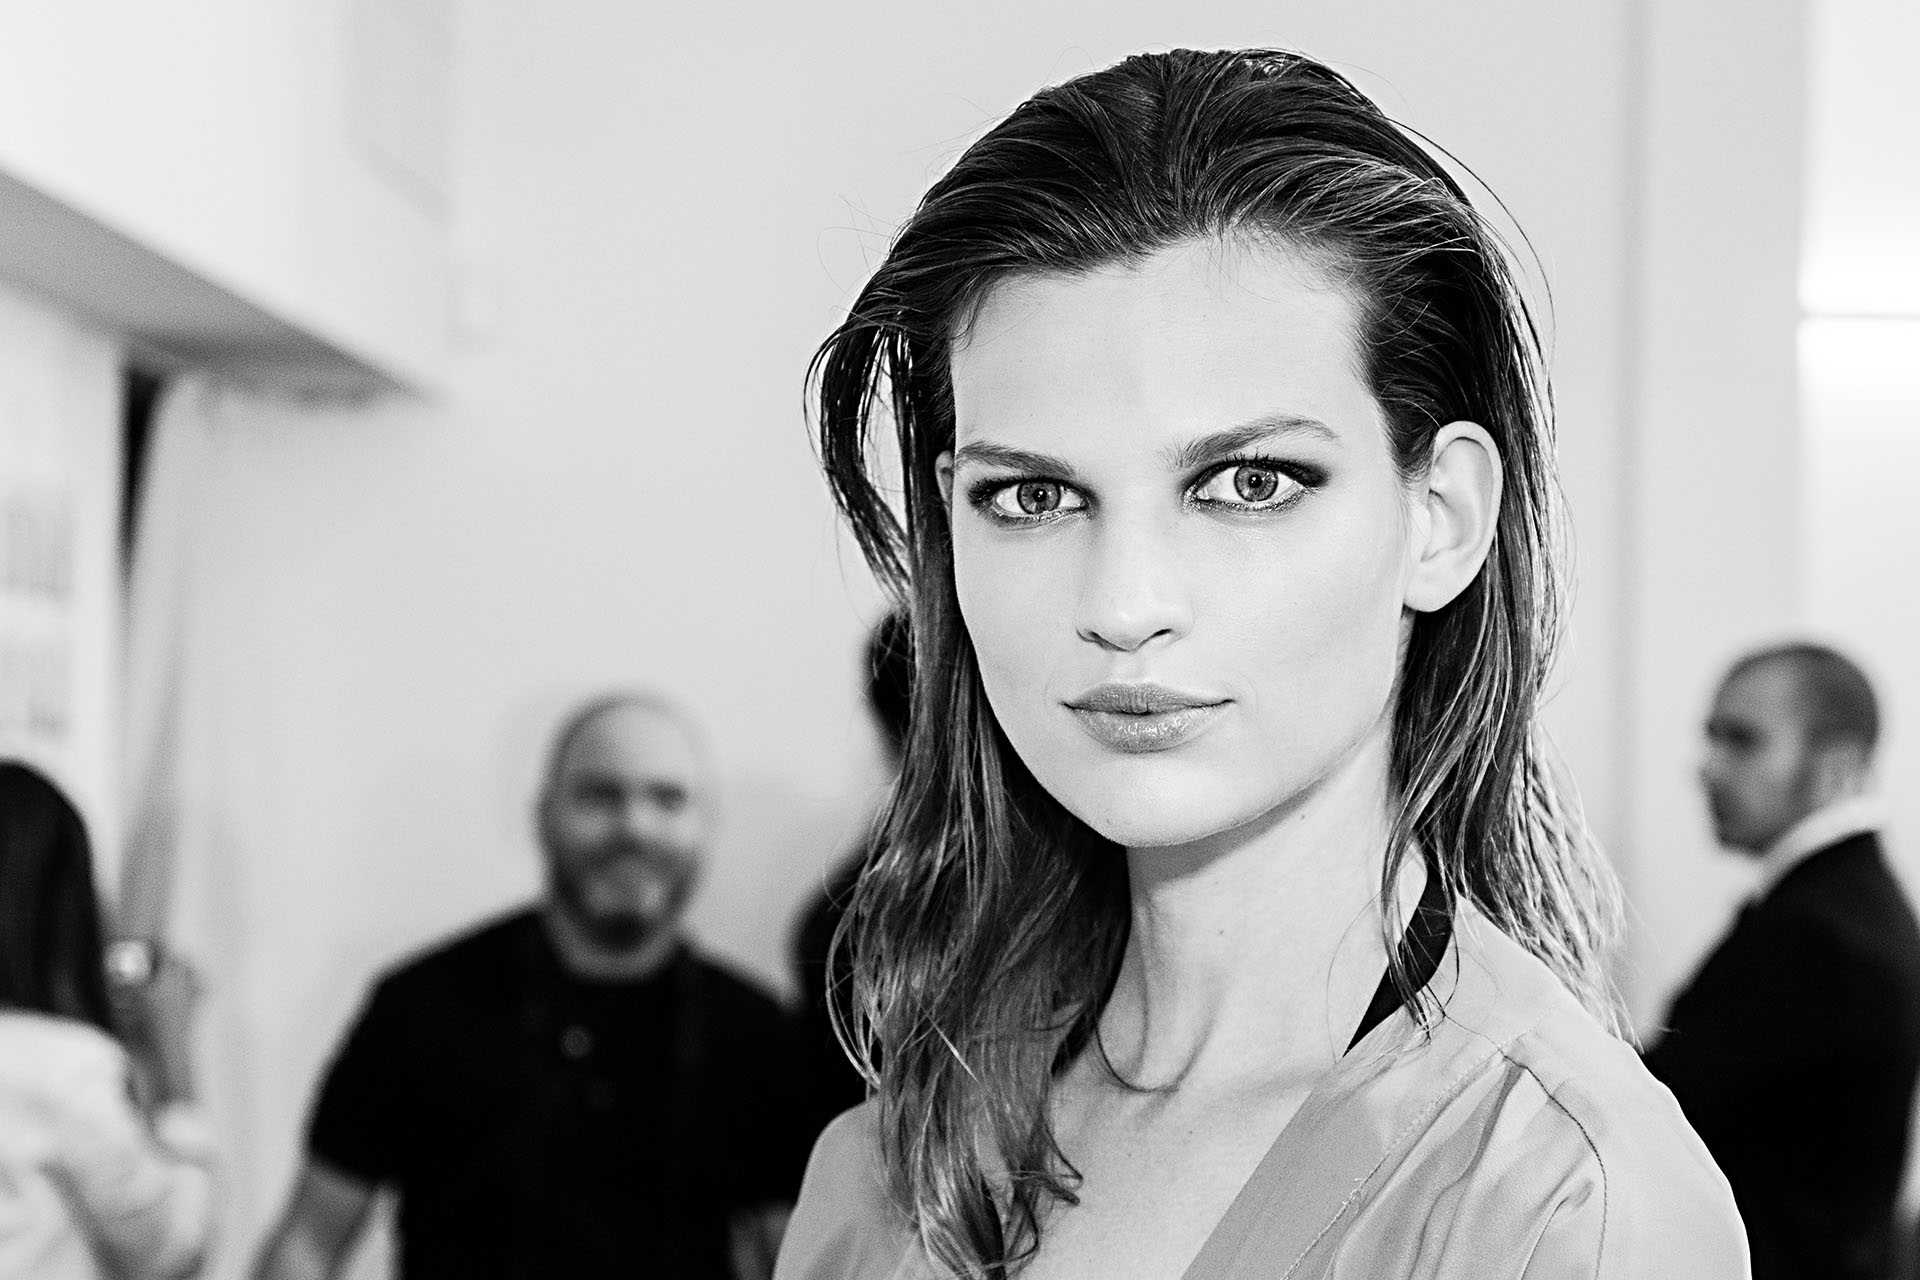 Backstage moda - Photo: © Andrea Pisapia / Spazio Orti 14